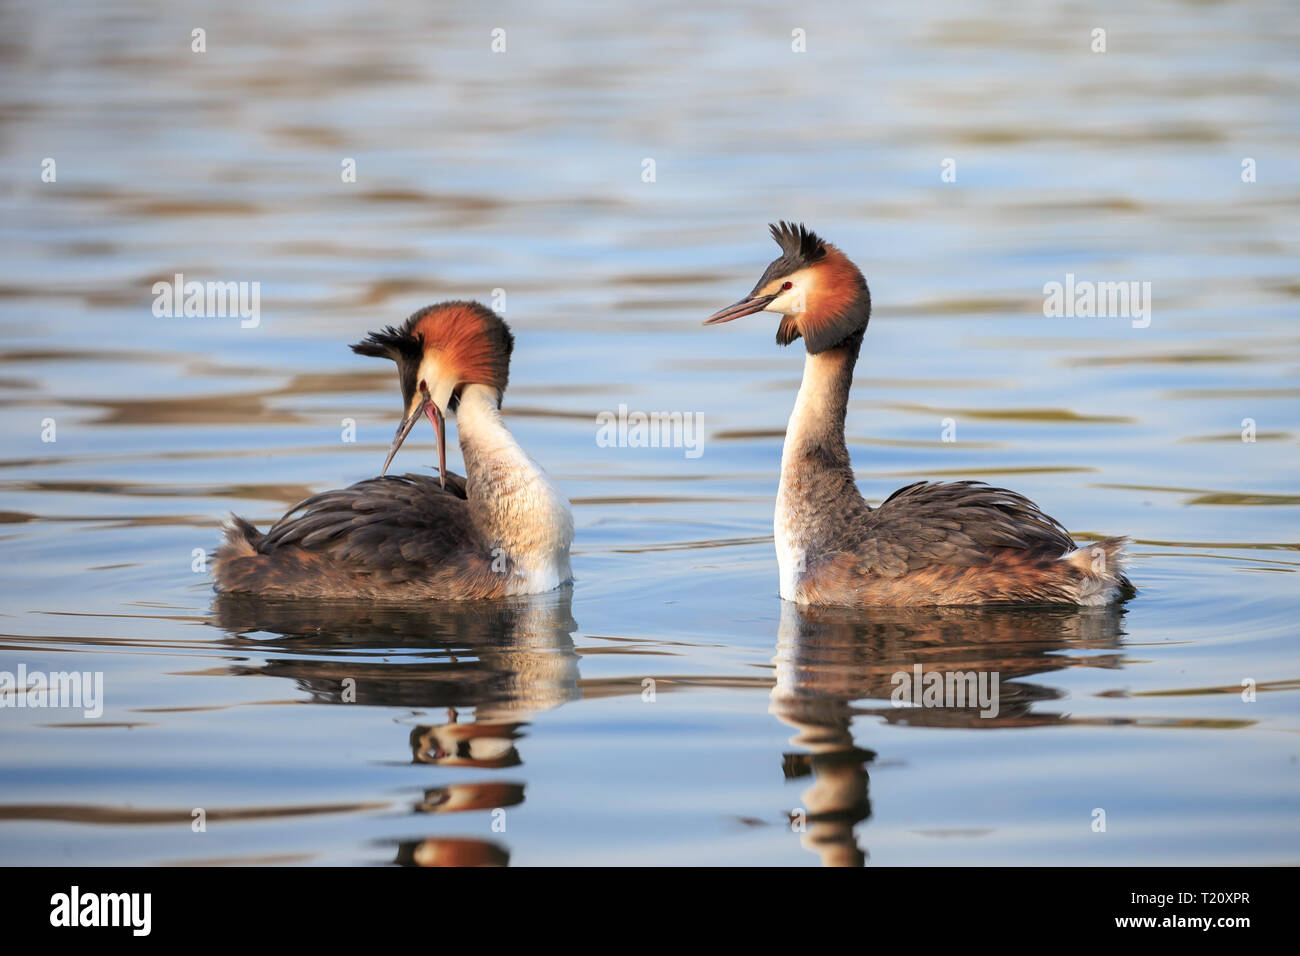 The great crested grebe is a member of the grebe family of water birds noted for its elaborate mating display. - Stock Image